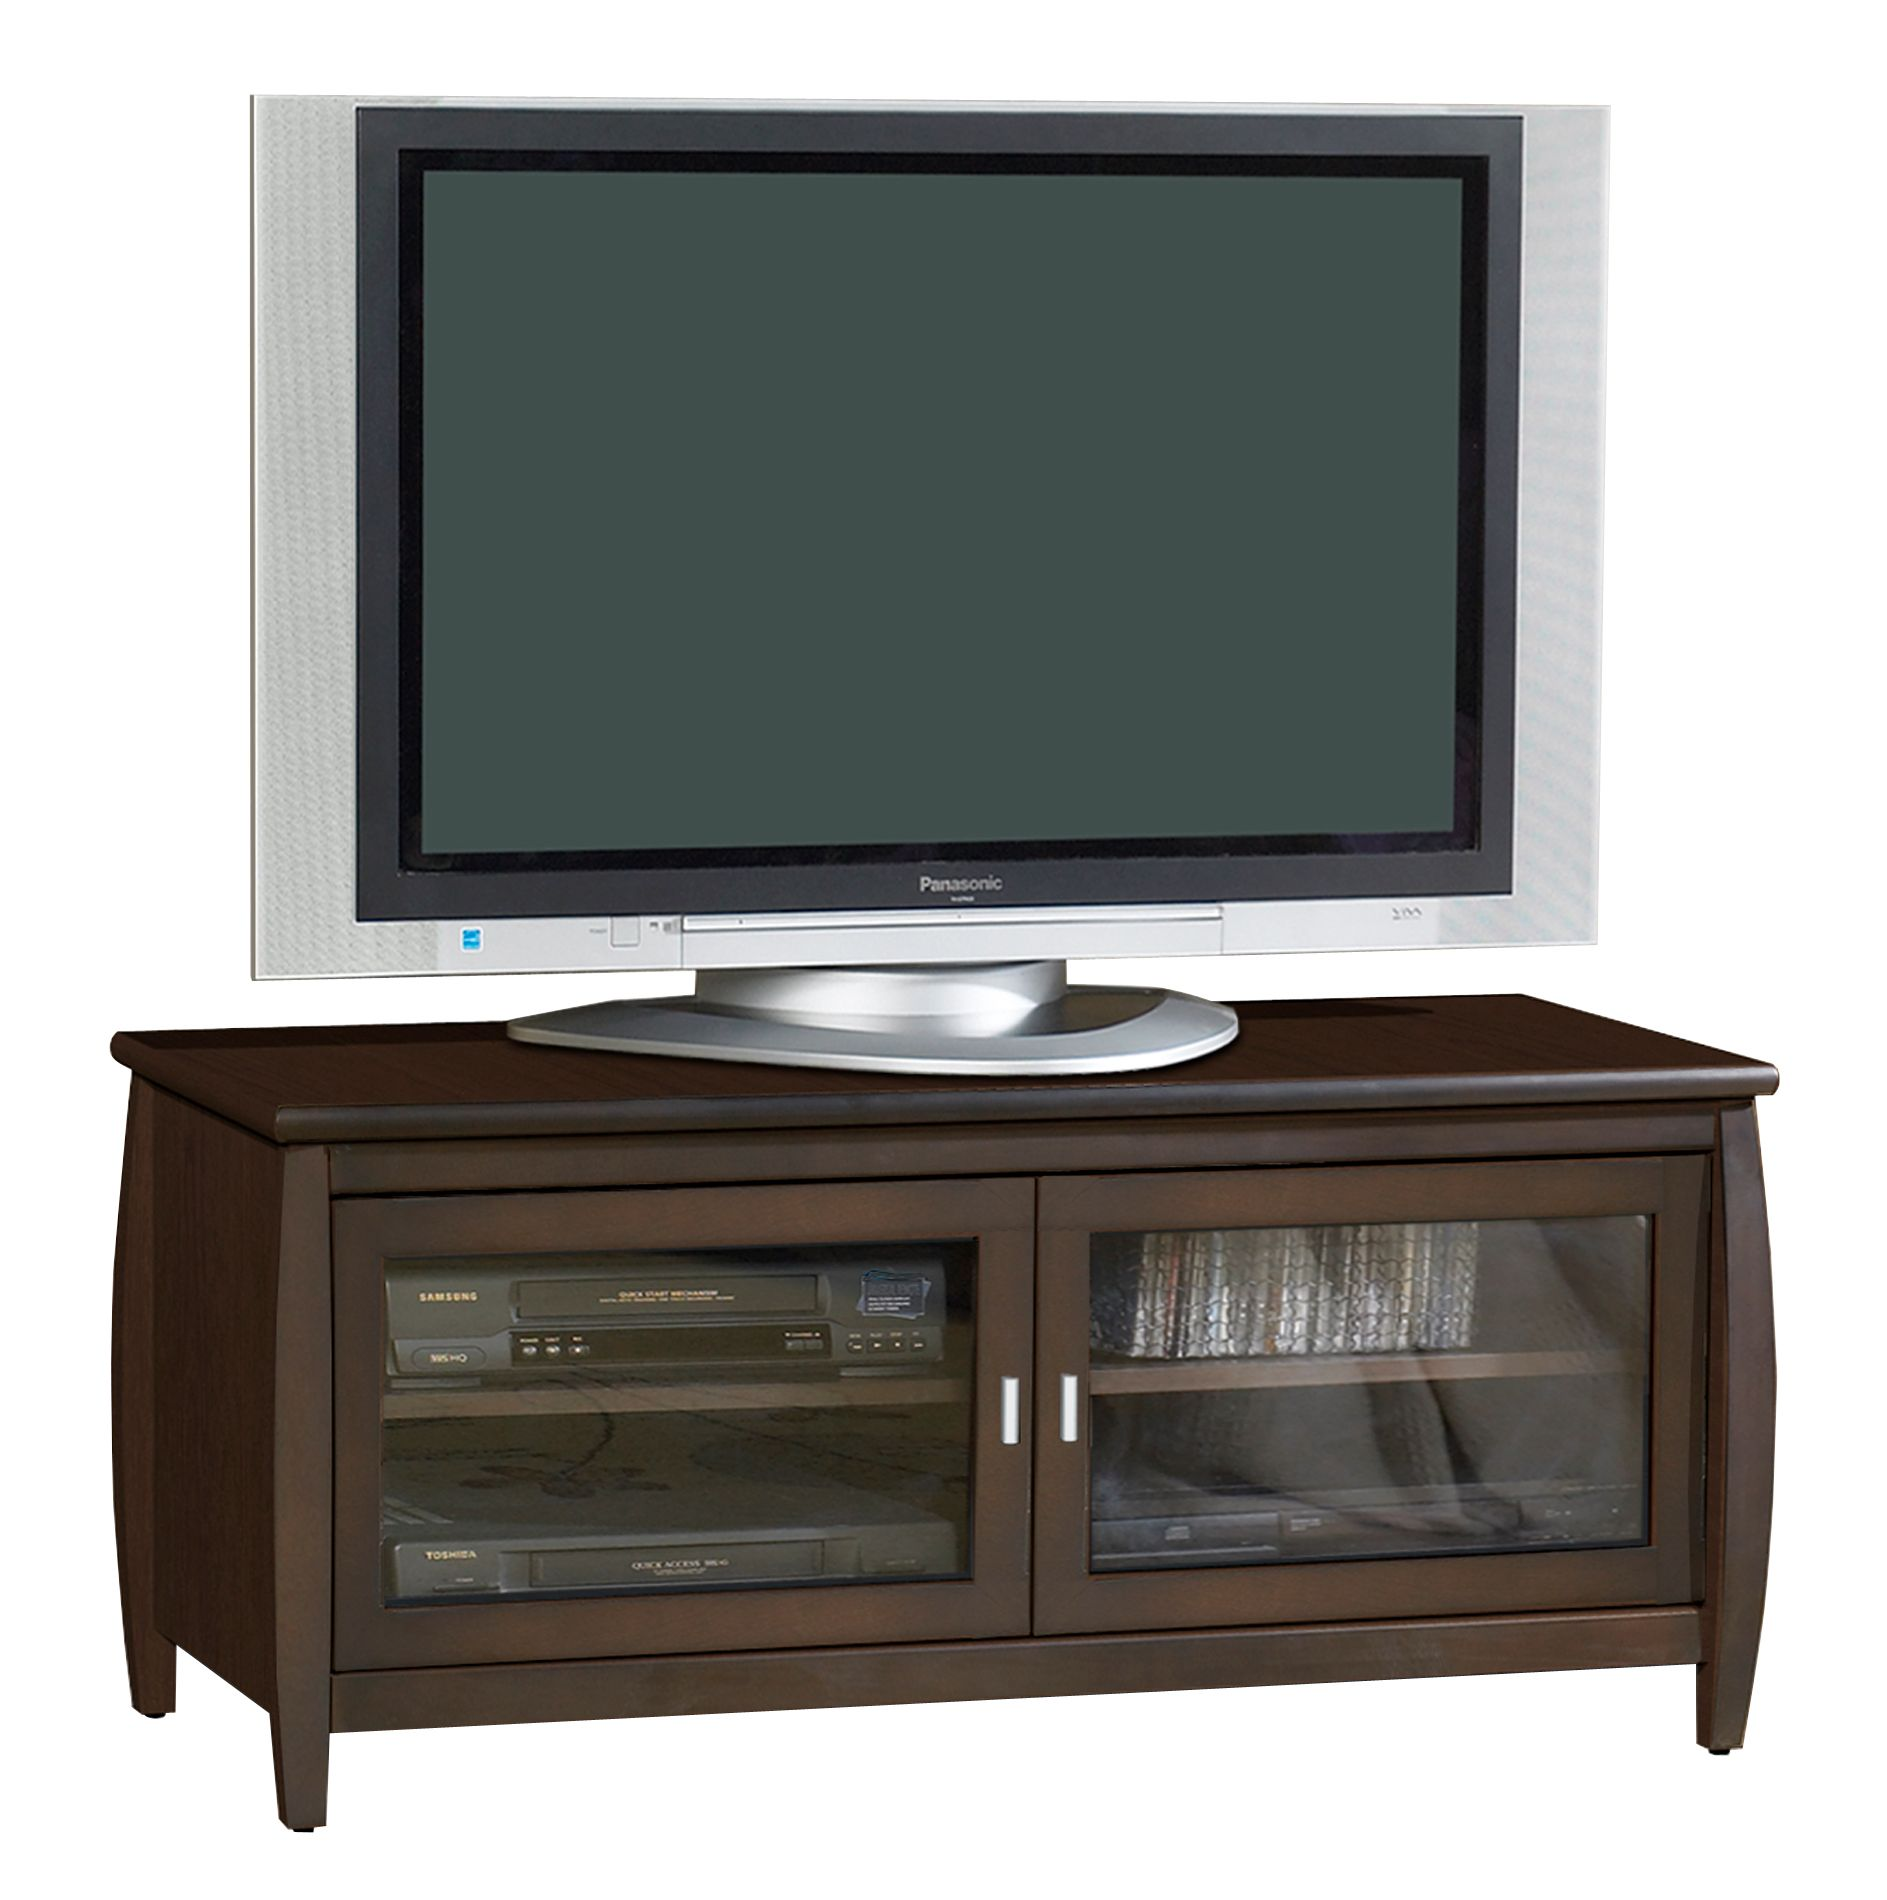 Tech Craft Tv Stand Cabinet